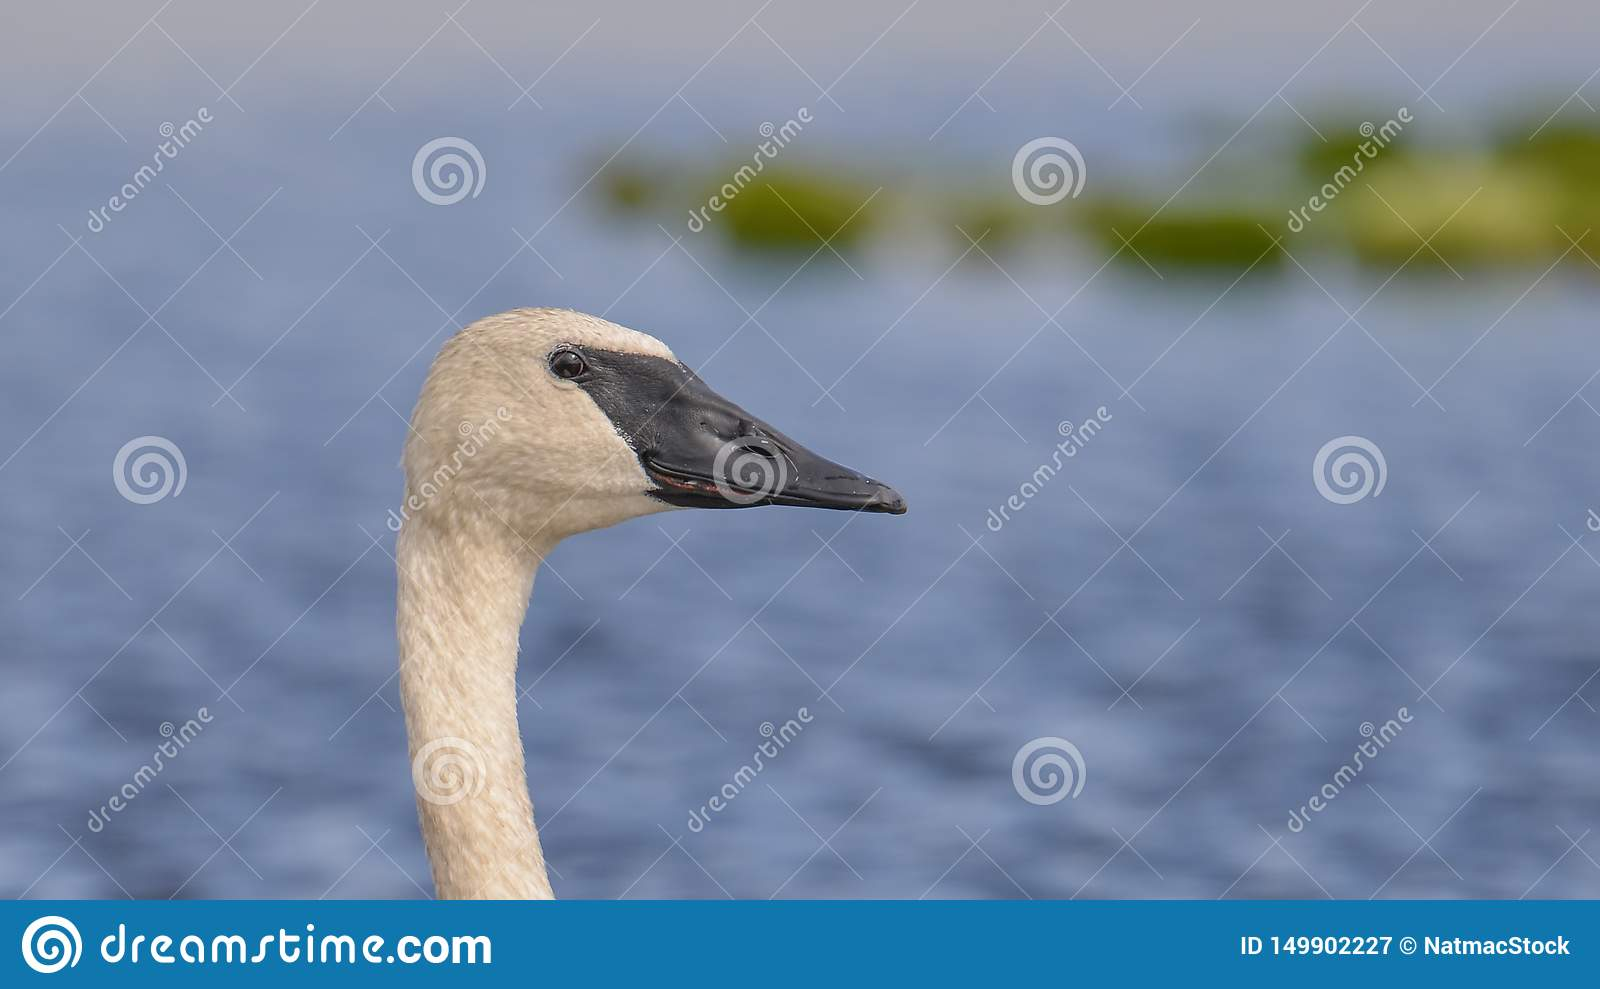 Trumpeter swan portrait with detail of beautiful plumage, eye, and beak - at the end of summer - taken in the Crex Meadows Wildlif